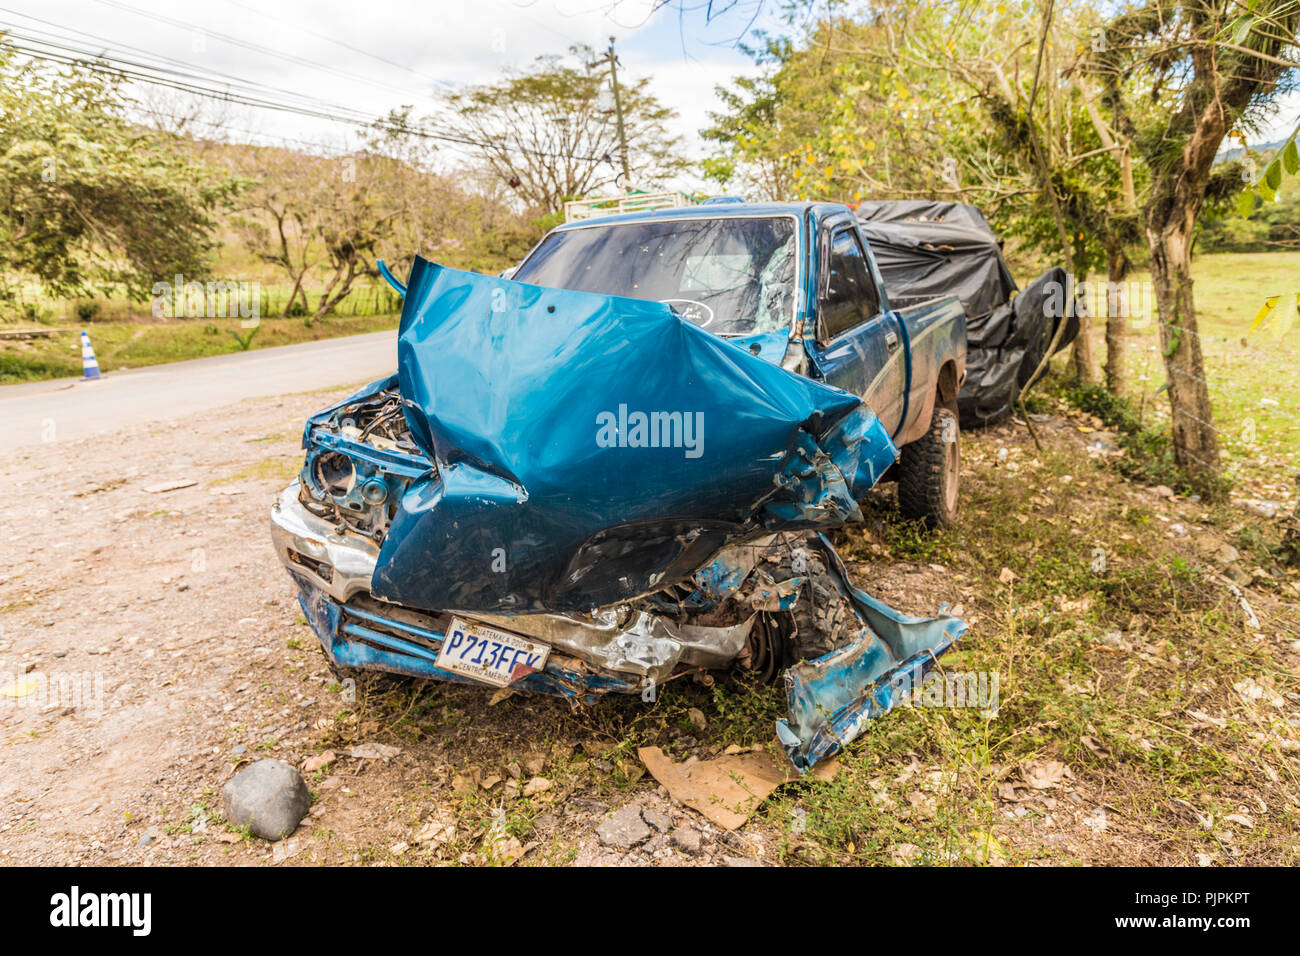 Car Smash Stock Photos Amp Car Smash Stock Images Alamy